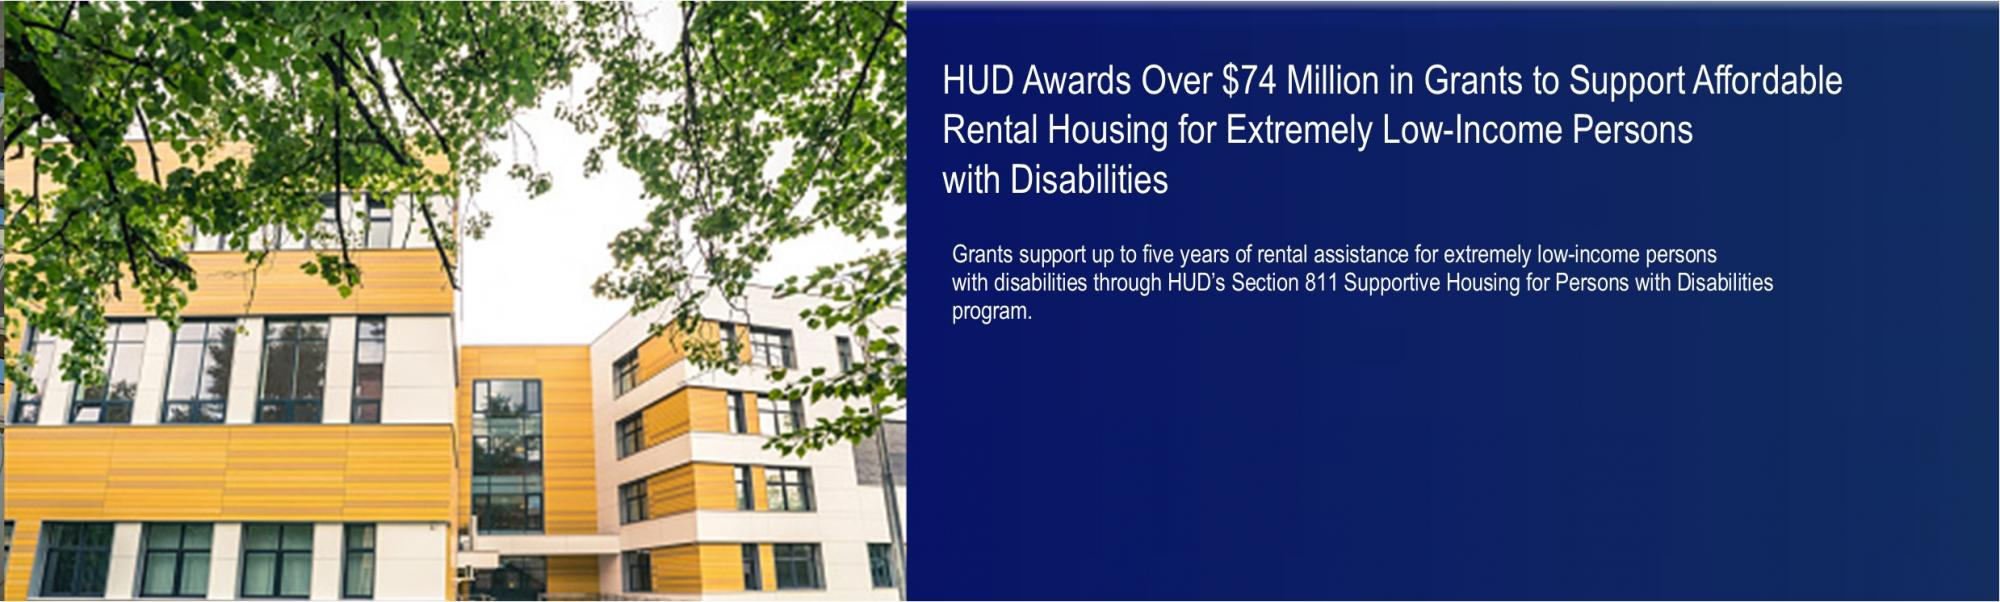 [HUD Awards Over $74 Million in Grants to Support Affordable Rental Housing for Extremely Low-Income Persons with Disabilities].